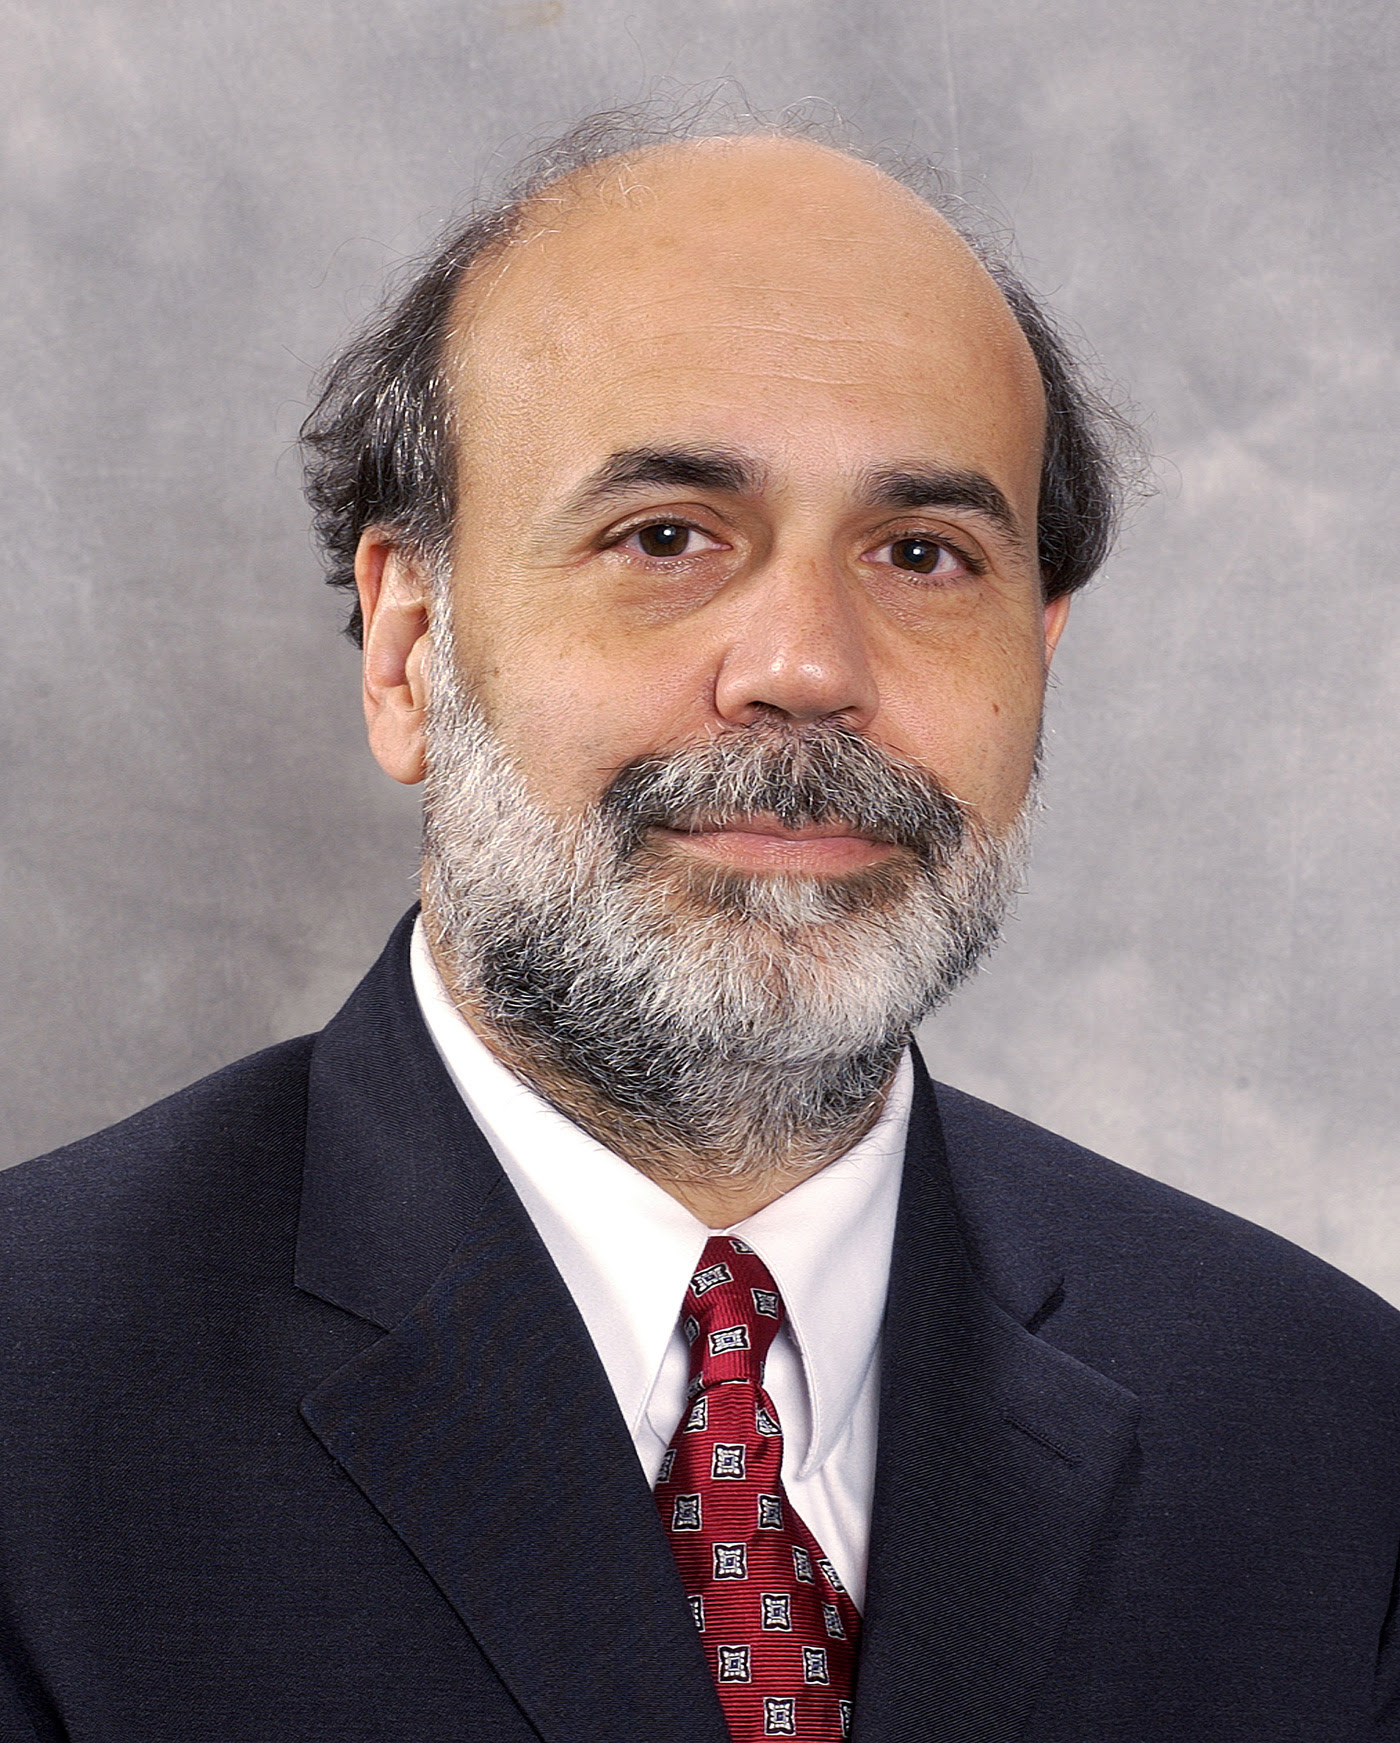 Dr. Ben Shalom Bernanke, Chairman of the Board of Governors of the United States Federal Reserve